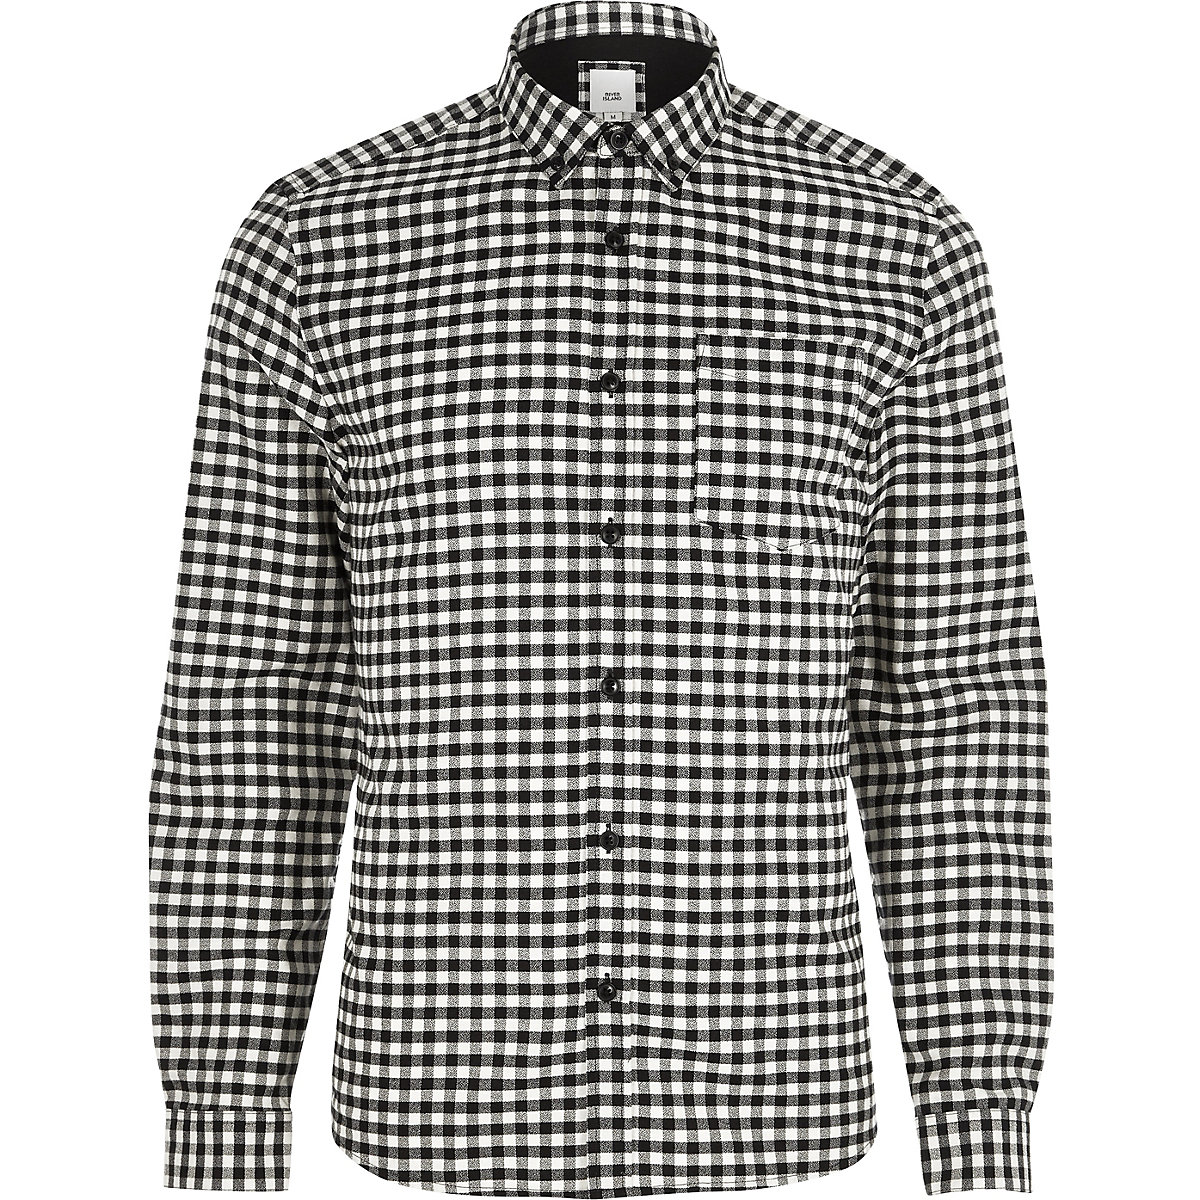 Black gingham slim fit button-down shirt